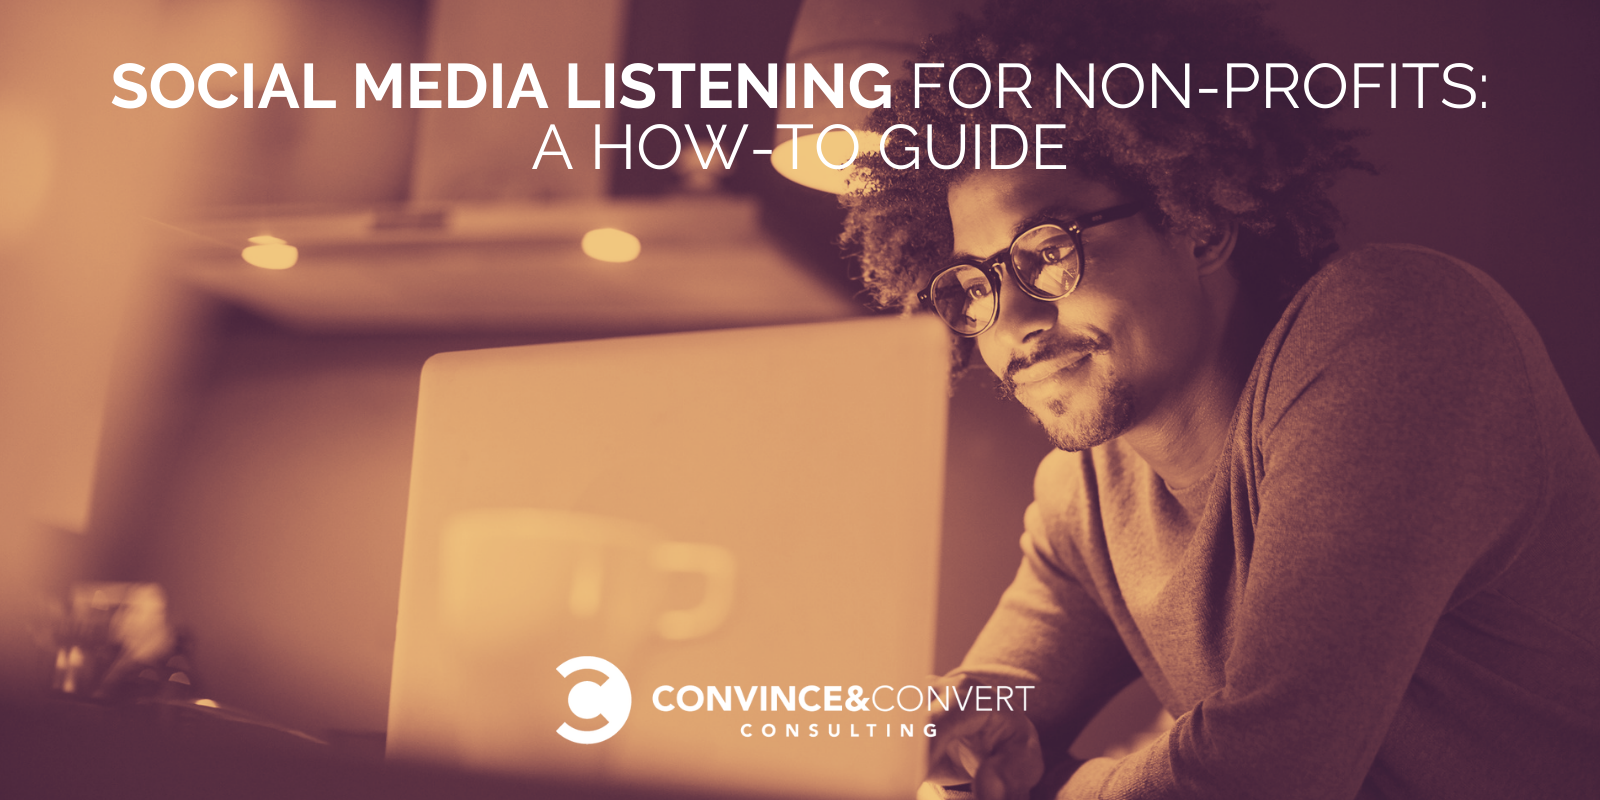 Social Media Listening for Non-Profits